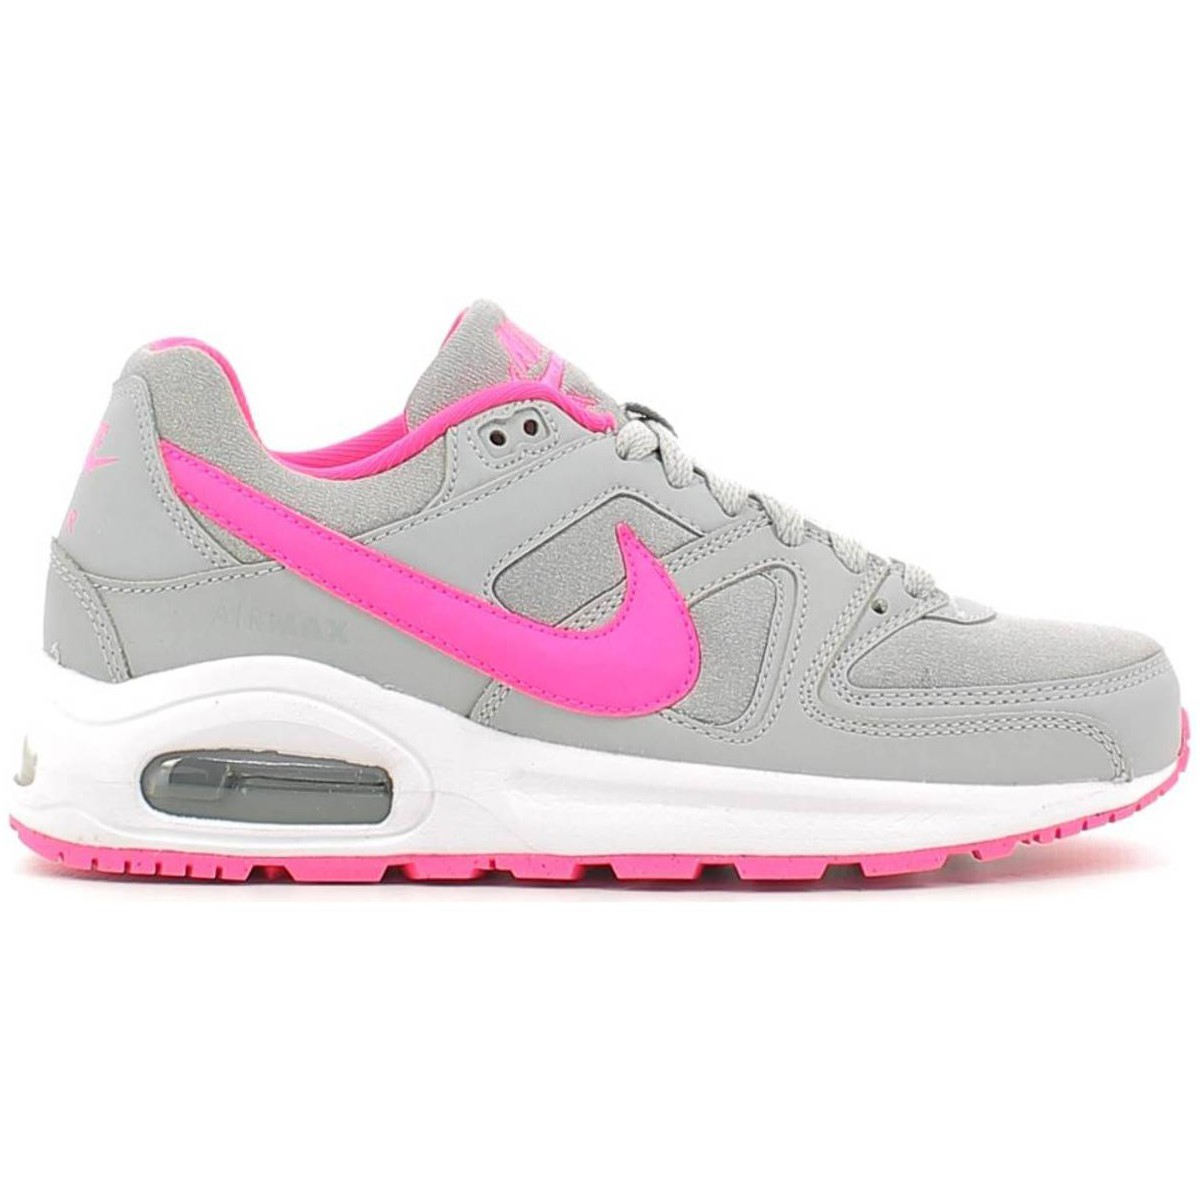 nike 844349 chaussures sports femmes gris chaussures fitness femme 109 08. Black Bedroom Furniture Sets. Home Design Ideas